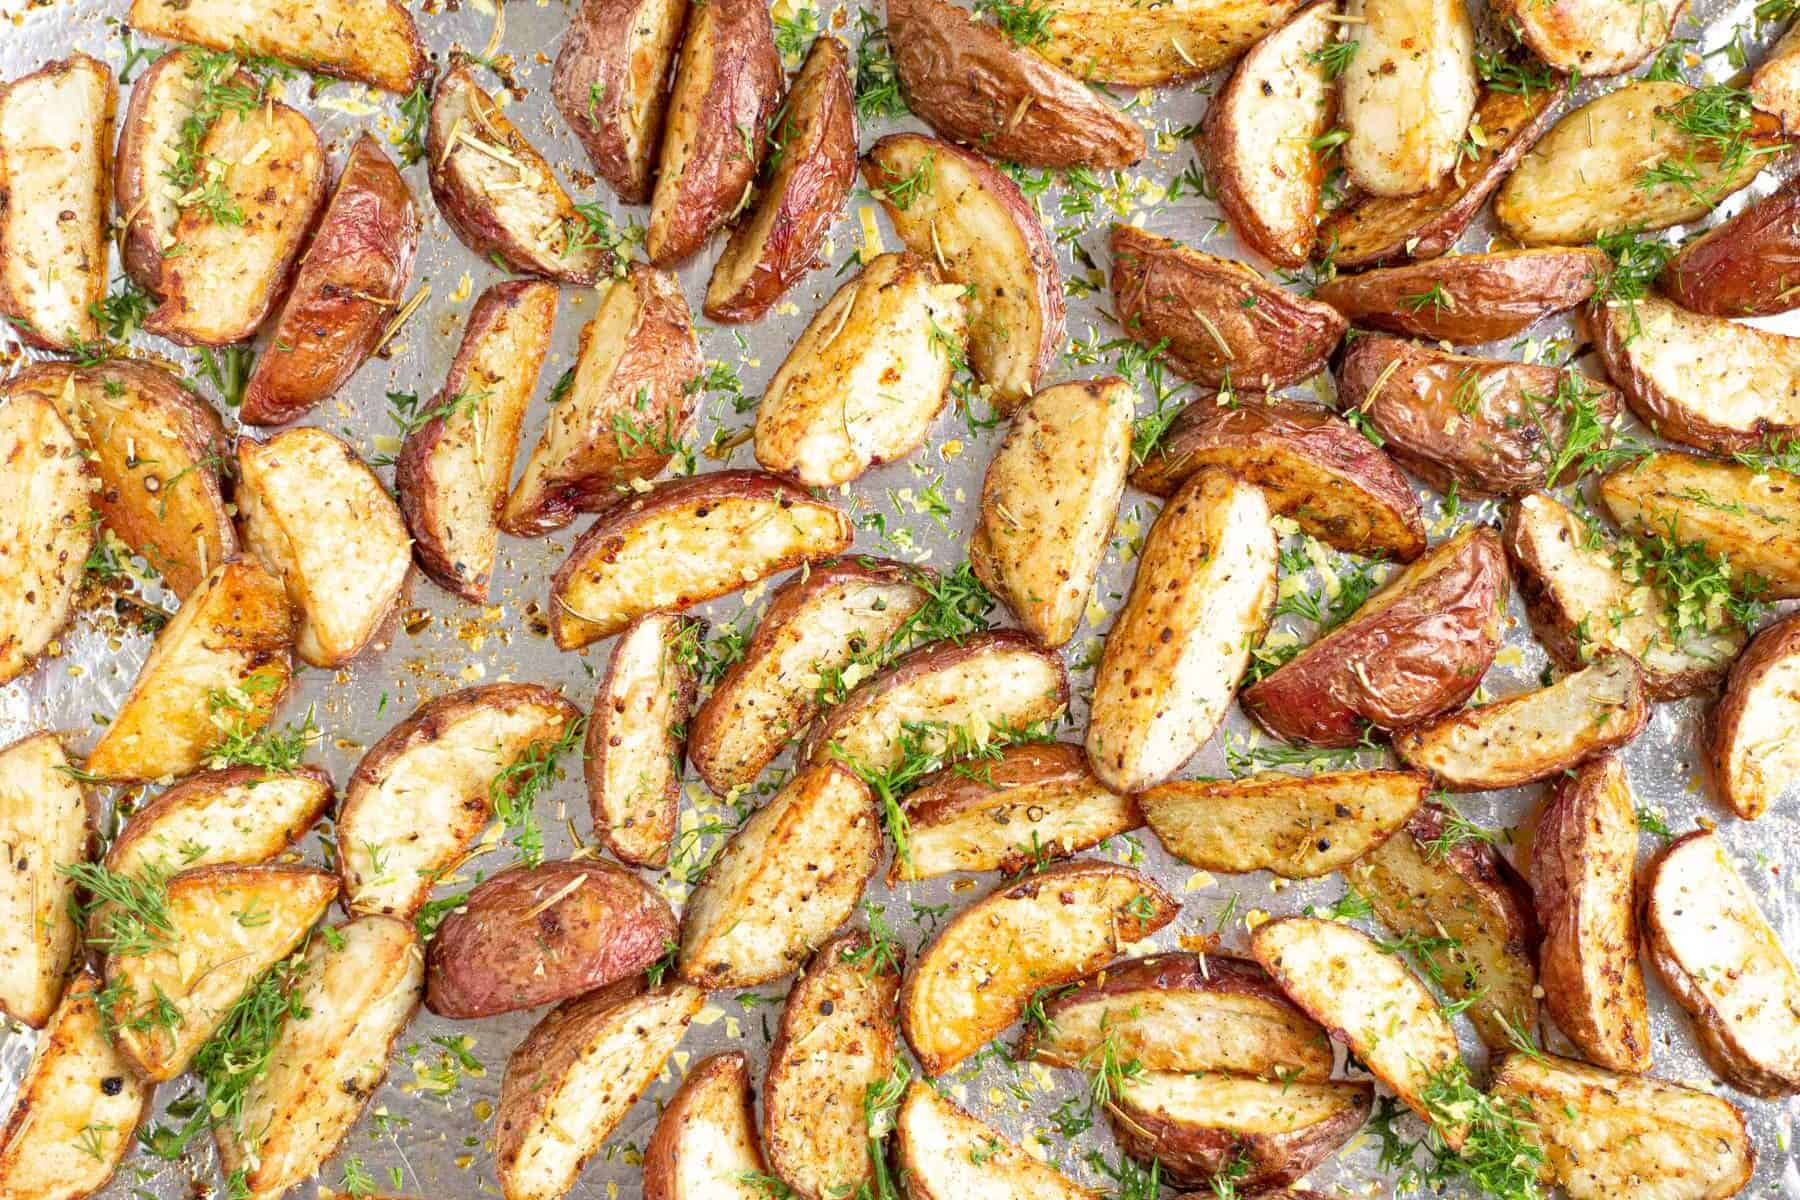 Potato wedges on an aluminum foil lined baking sheet tossed in olive oil and herbs